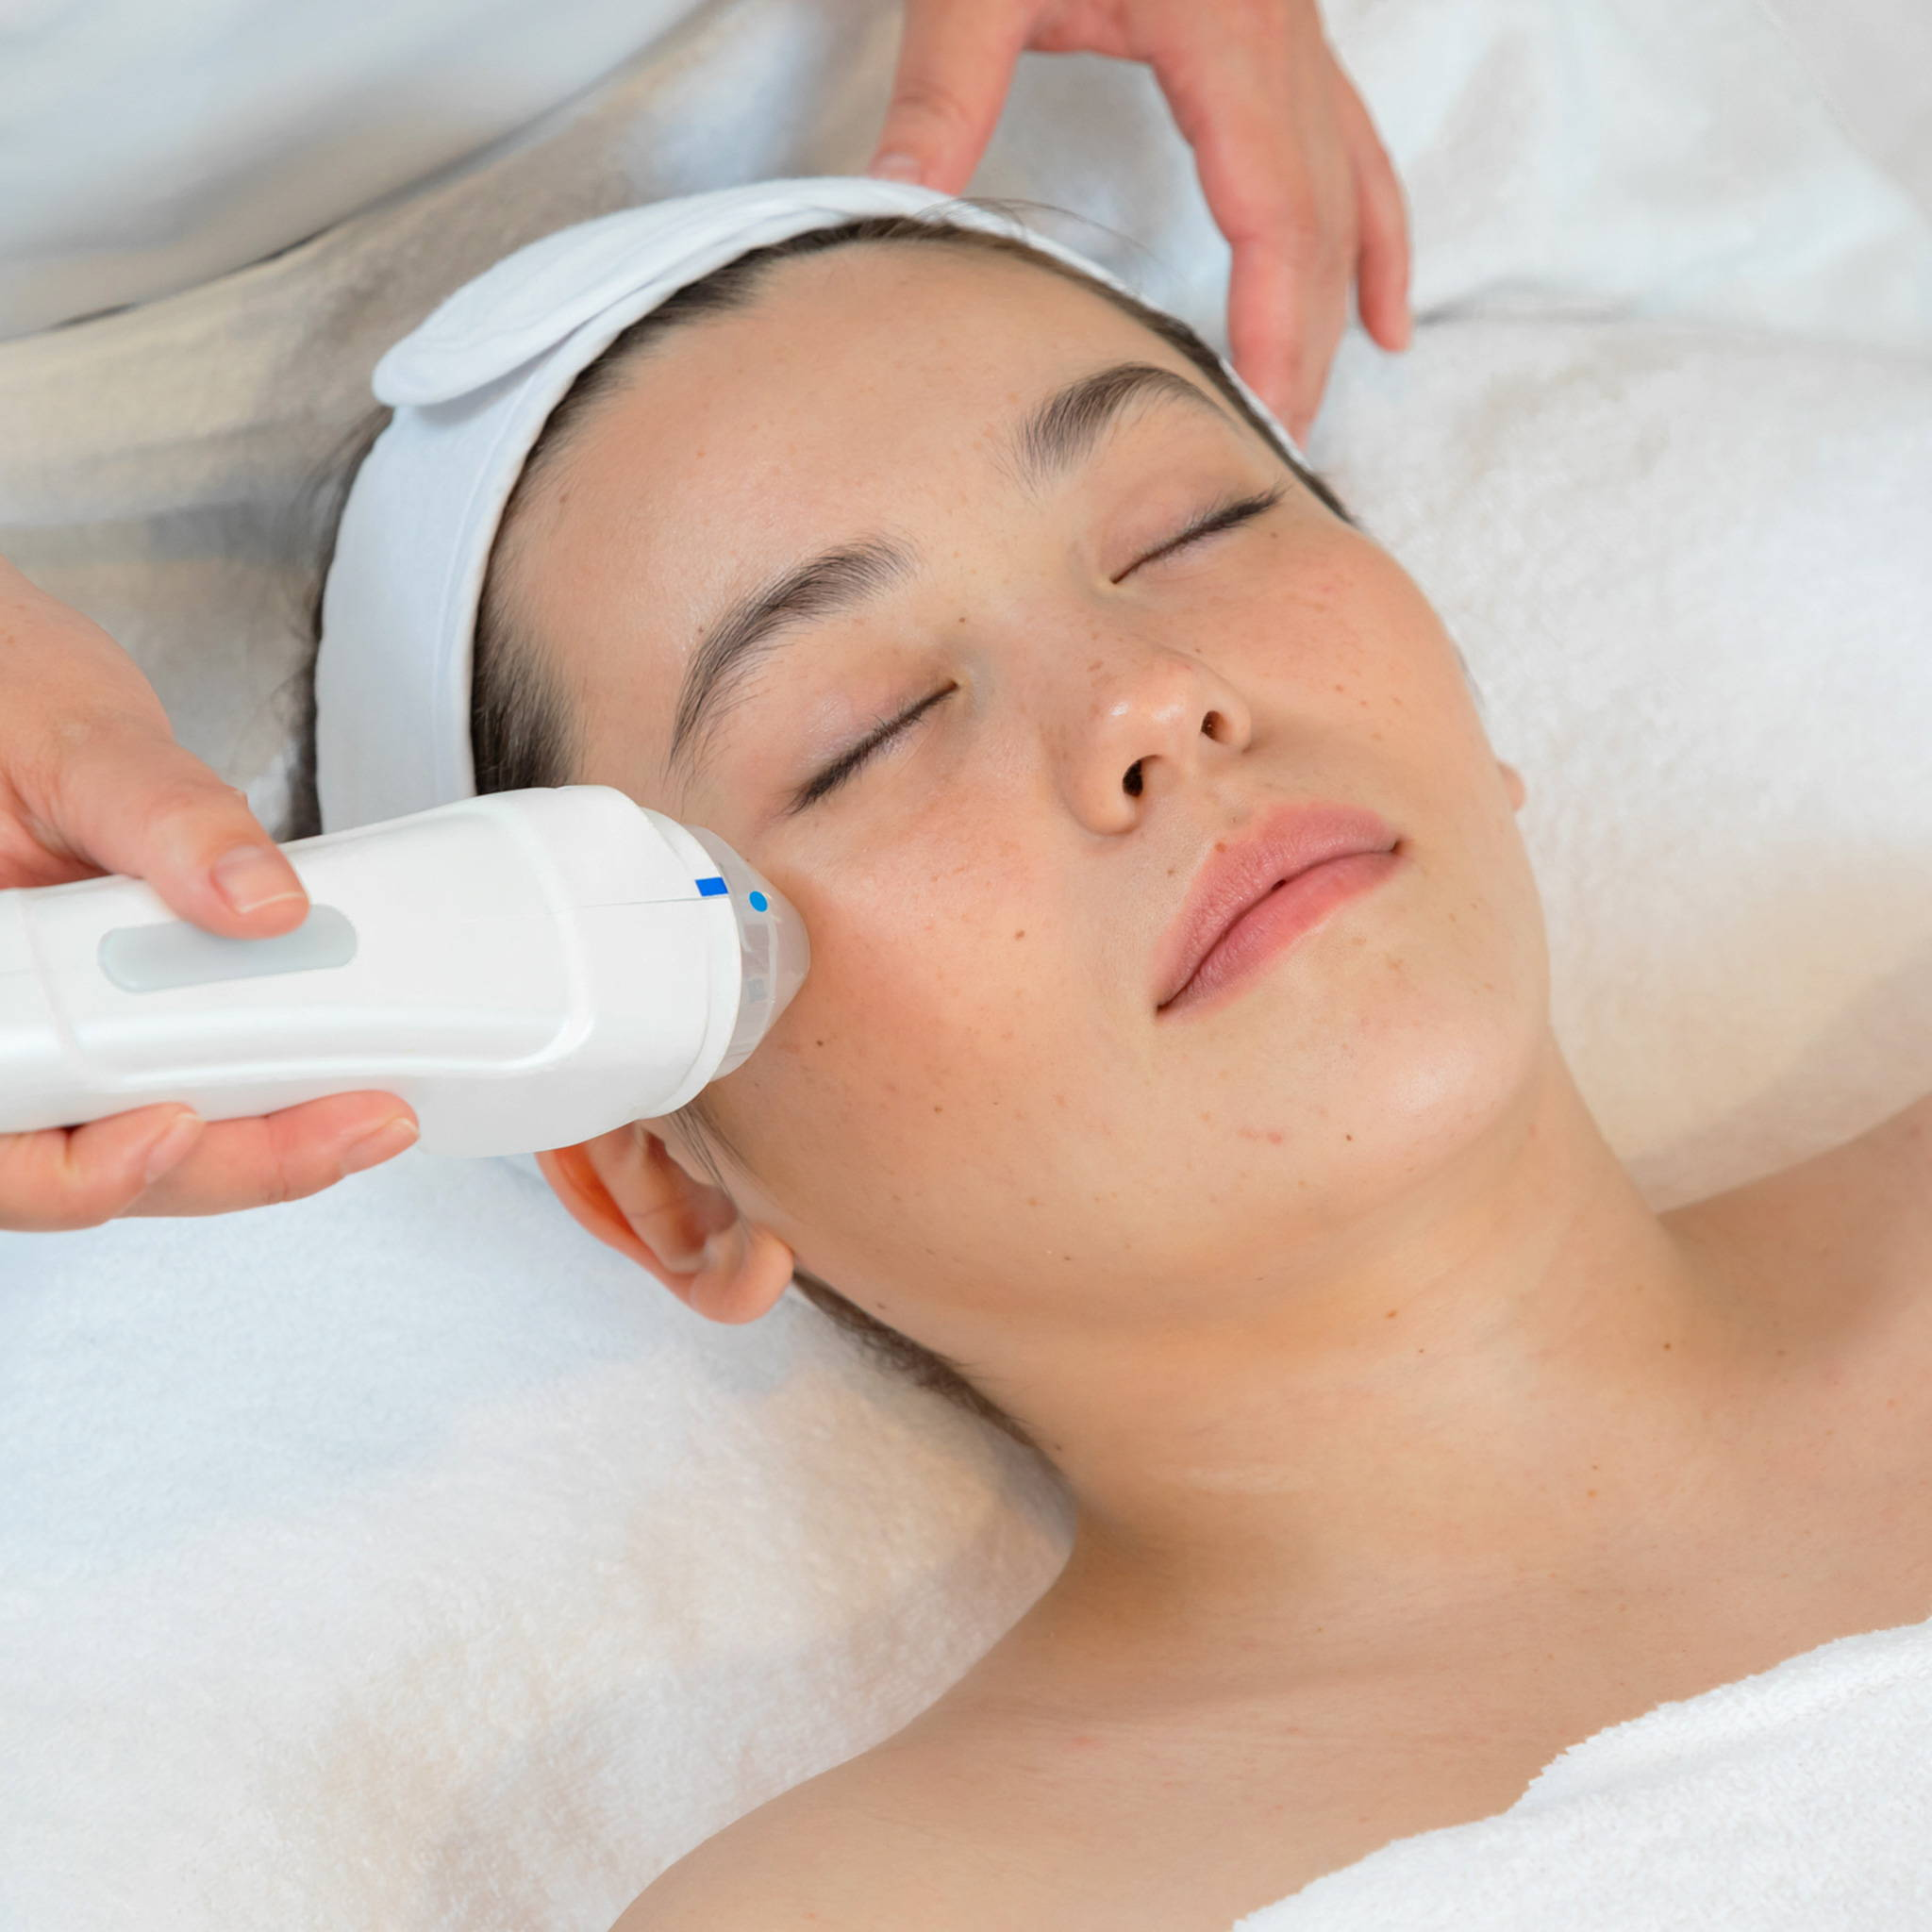 Intensif RF Microneedling Treatment